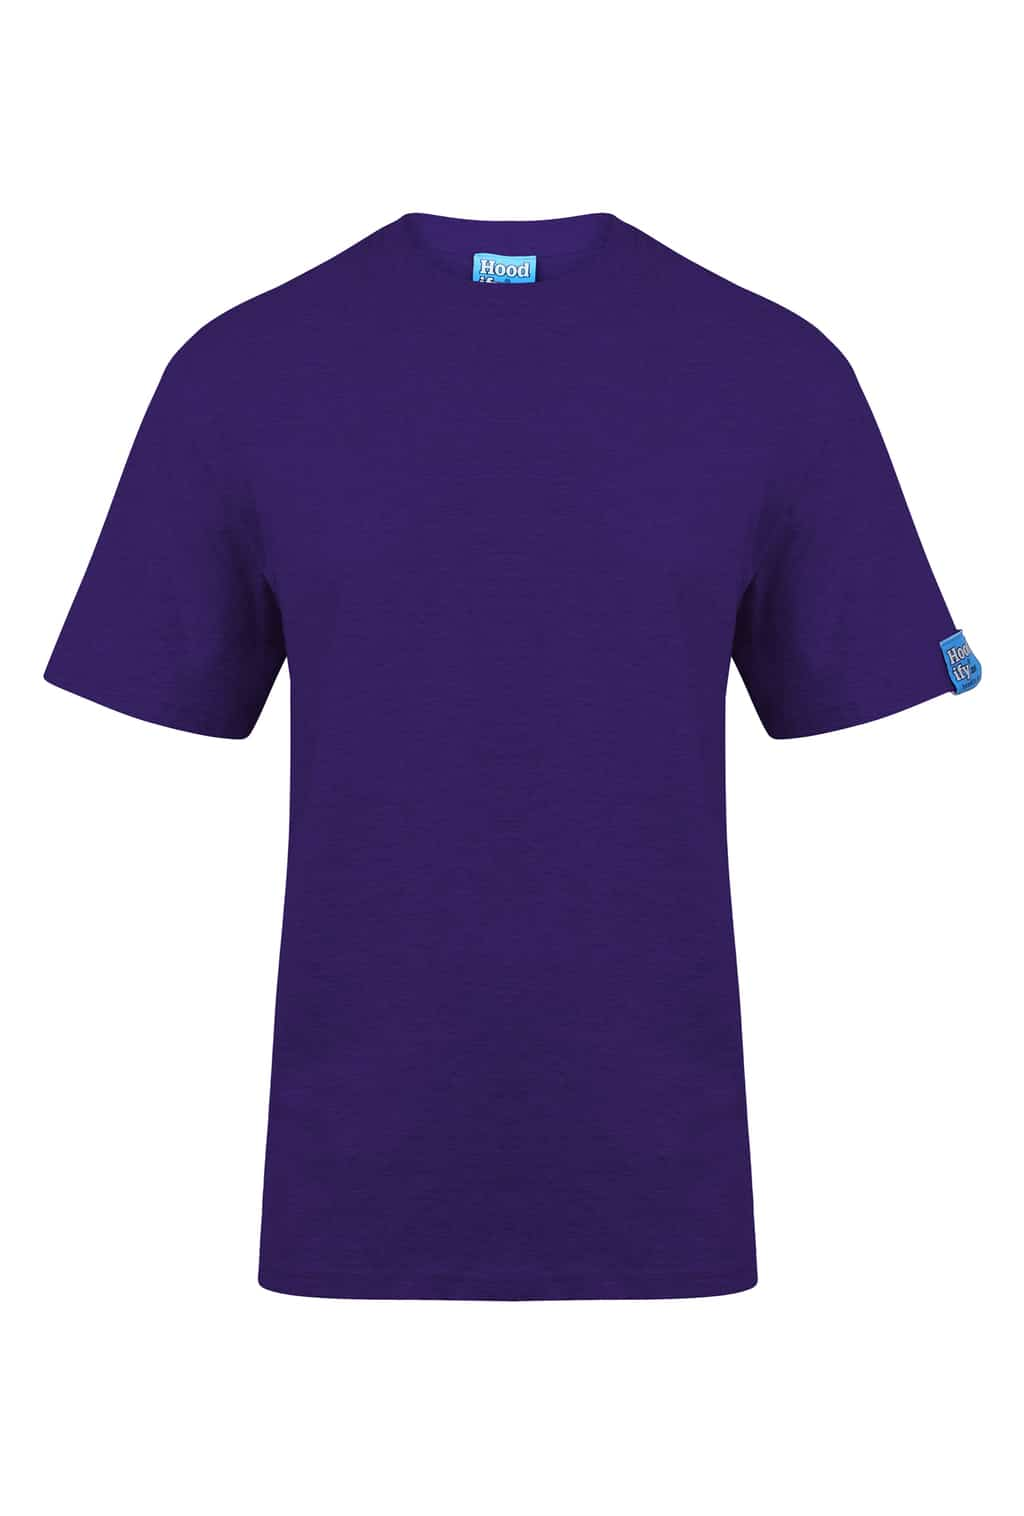 HOODIFY.ME CUSTOM DESIGNED T-SHIRTS PURPLE